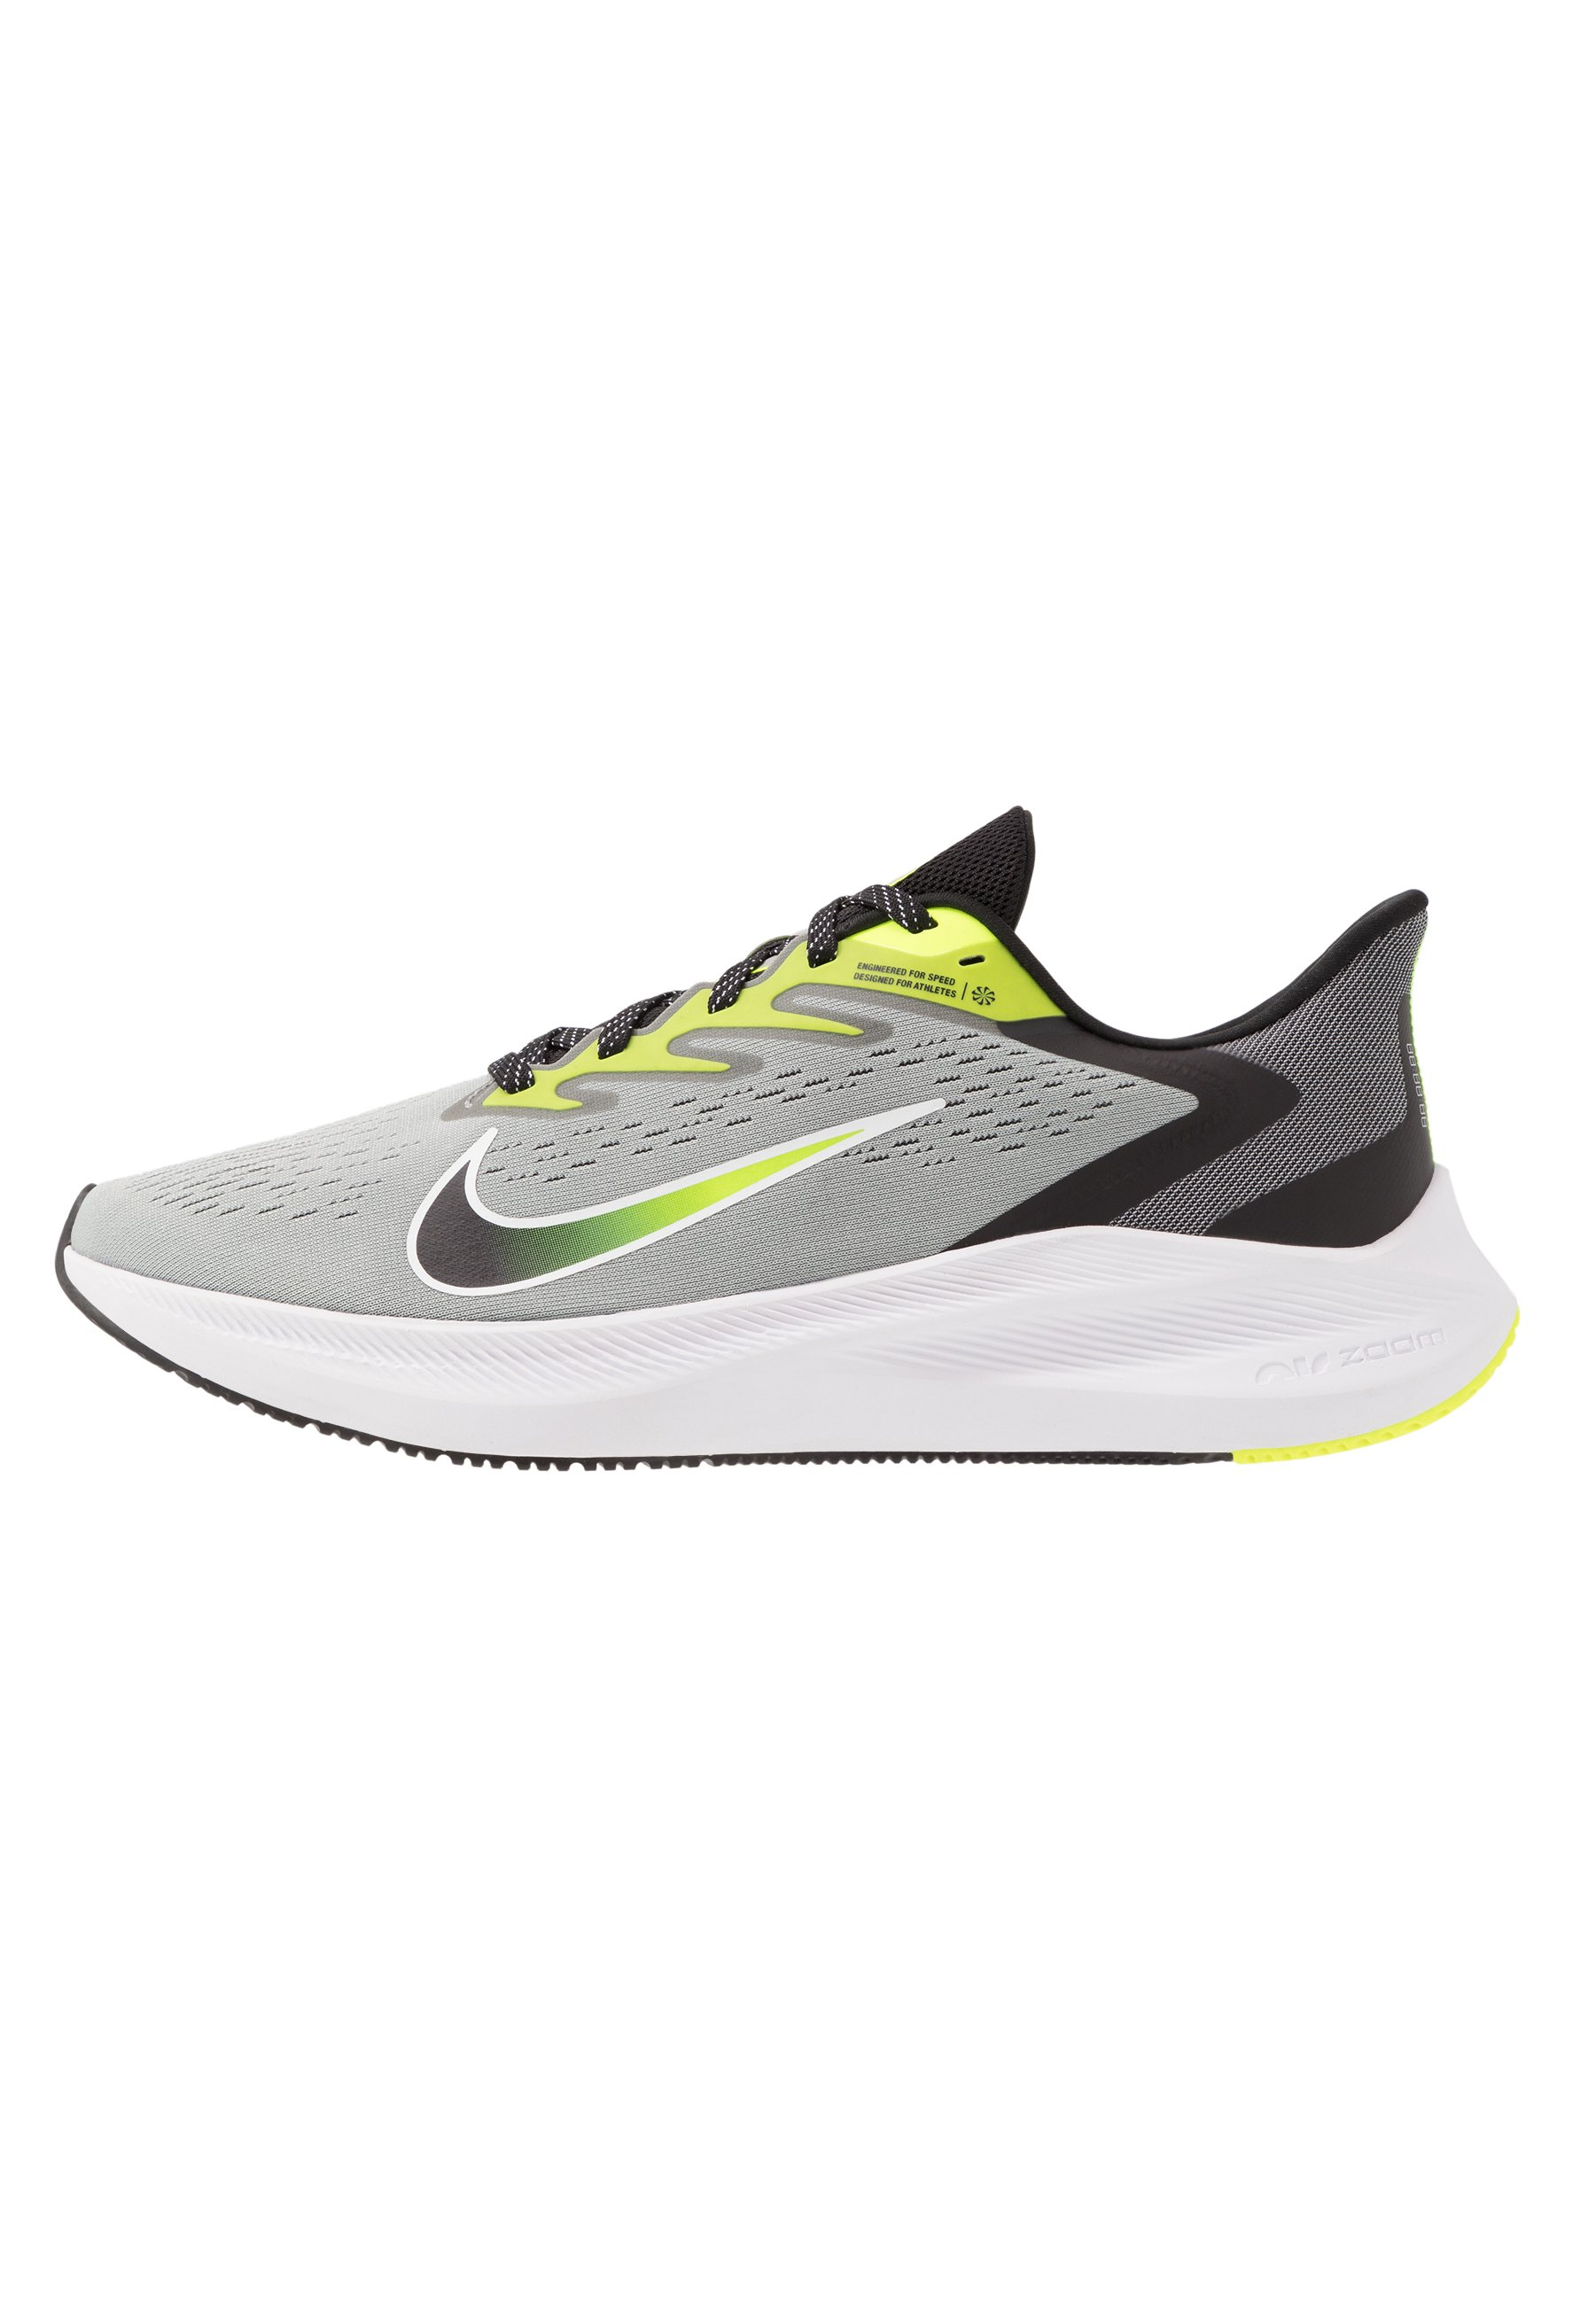 ZOOM WINFLO 7 Chaussures de running neutres light smoke greyblackvoltwhite